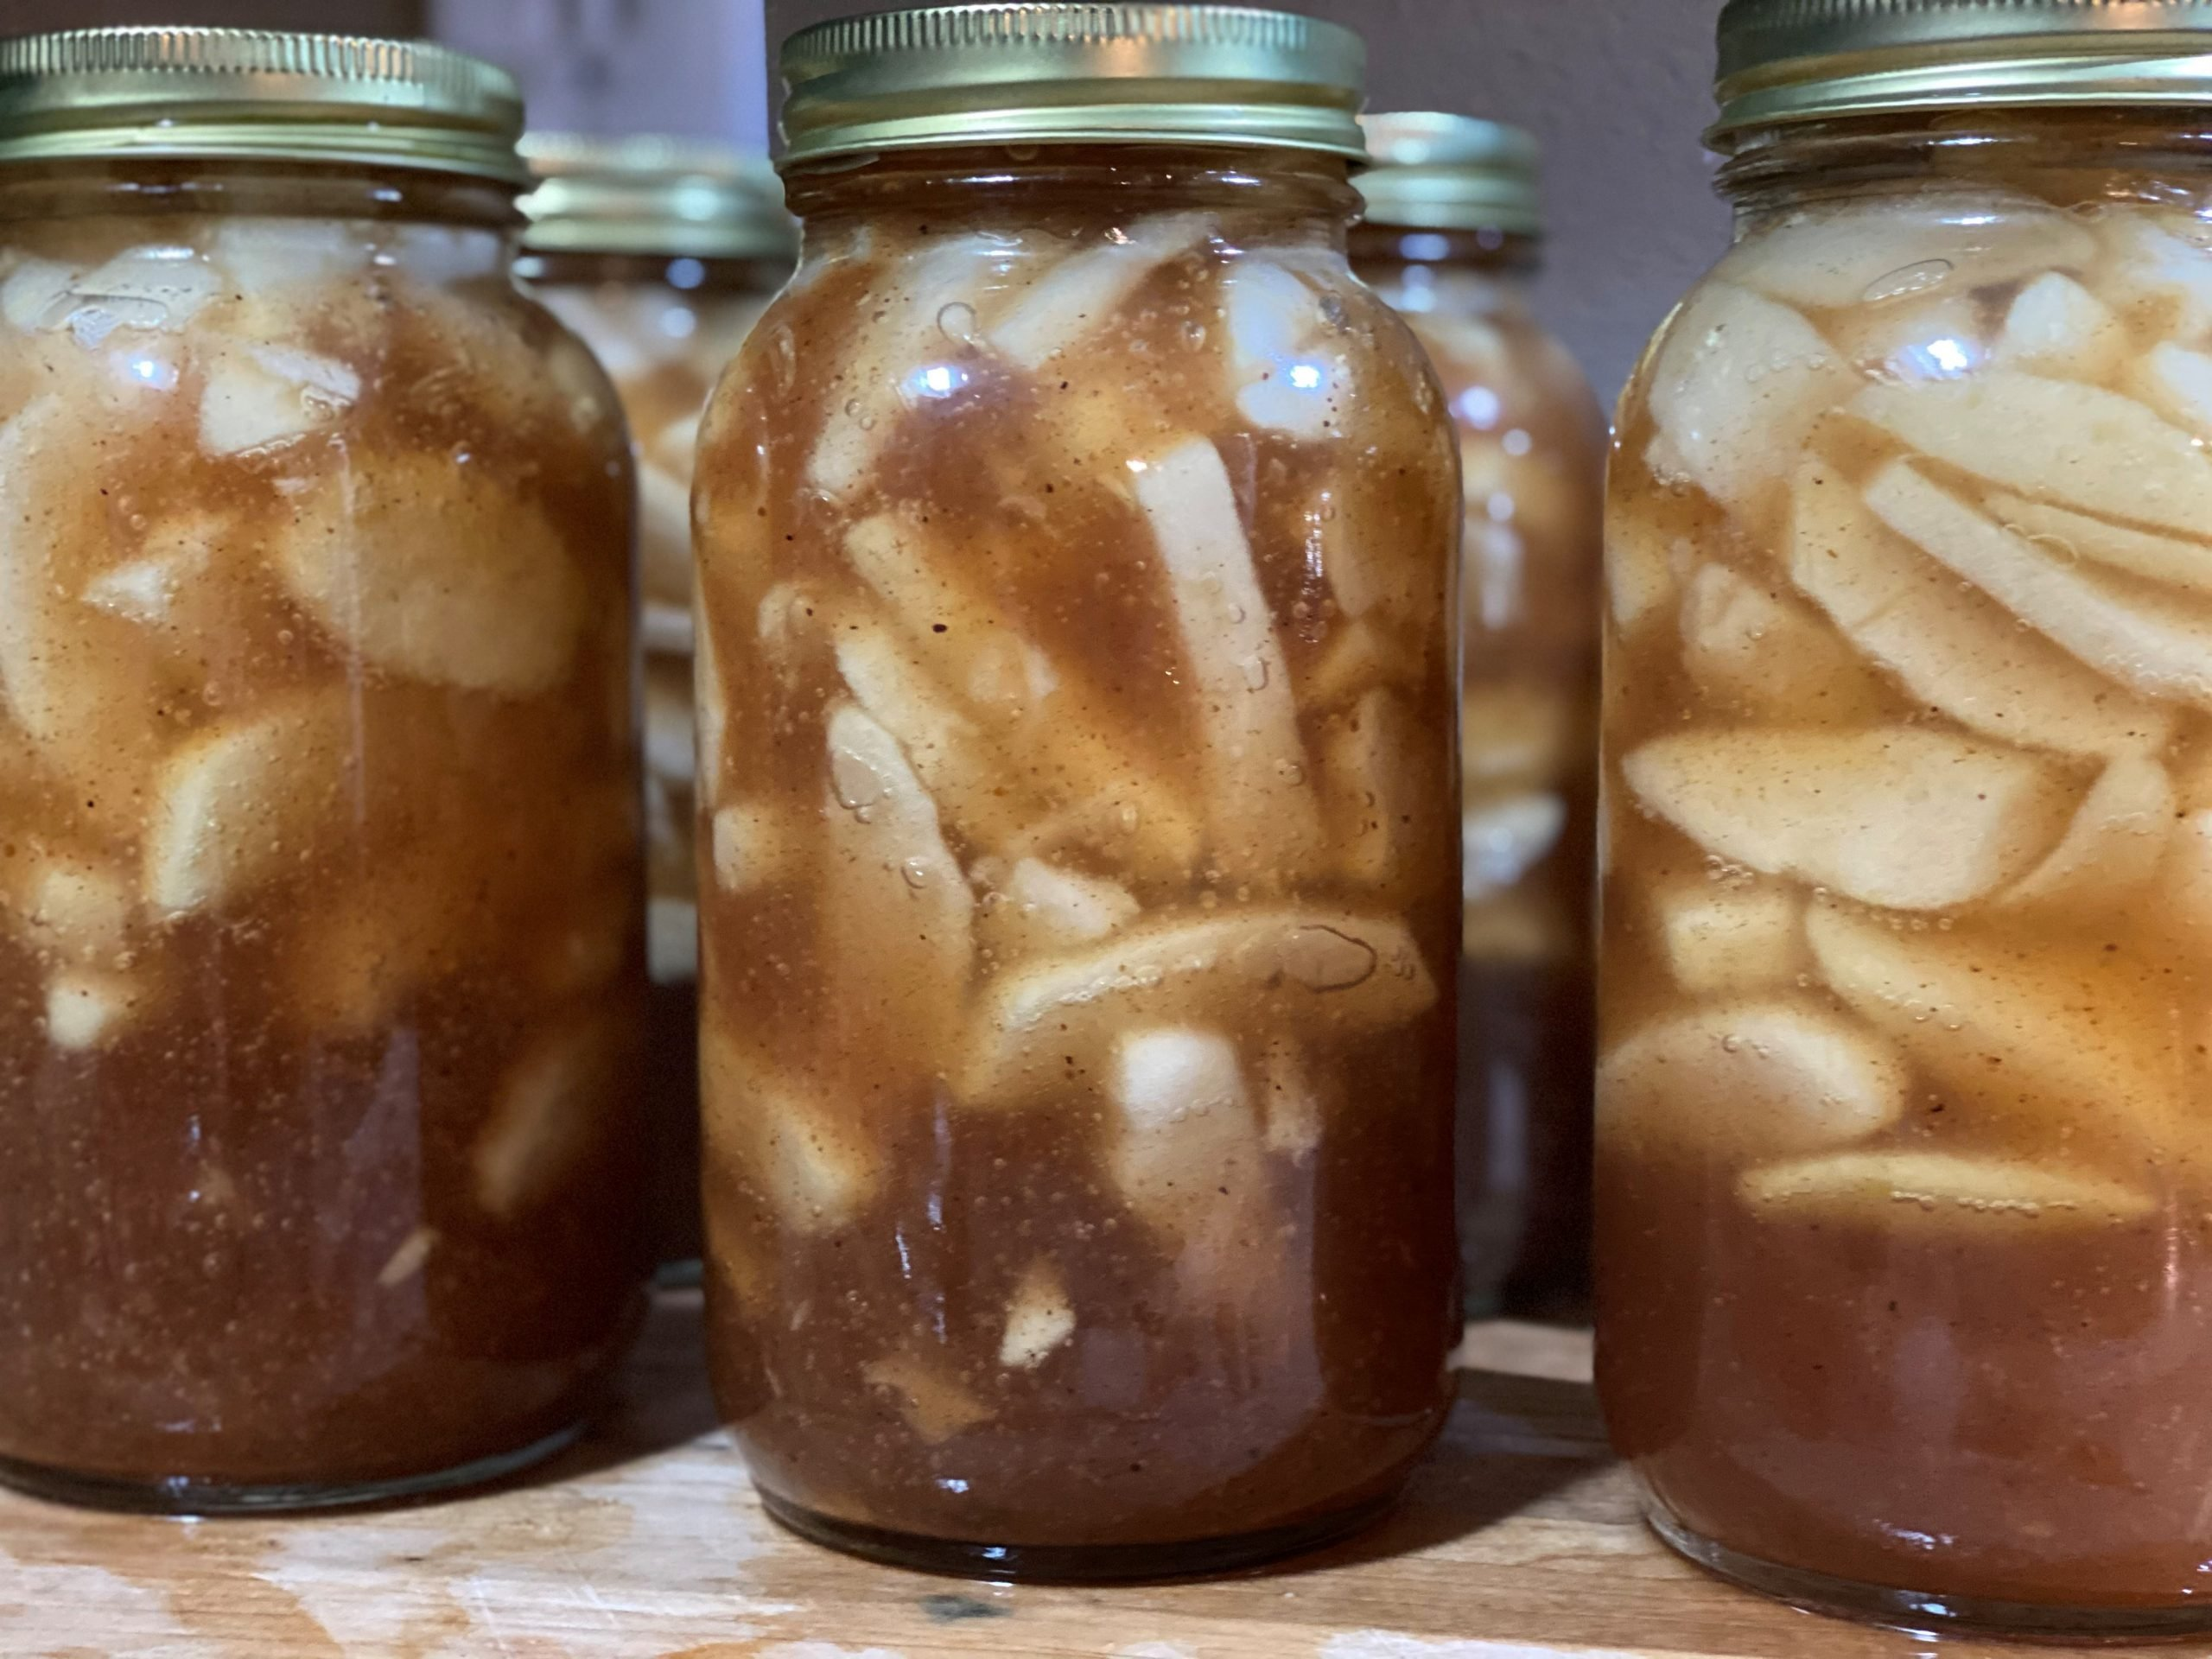 The Absolute Best Homemade Apple Pie Filling • Our Little Bit of Earth